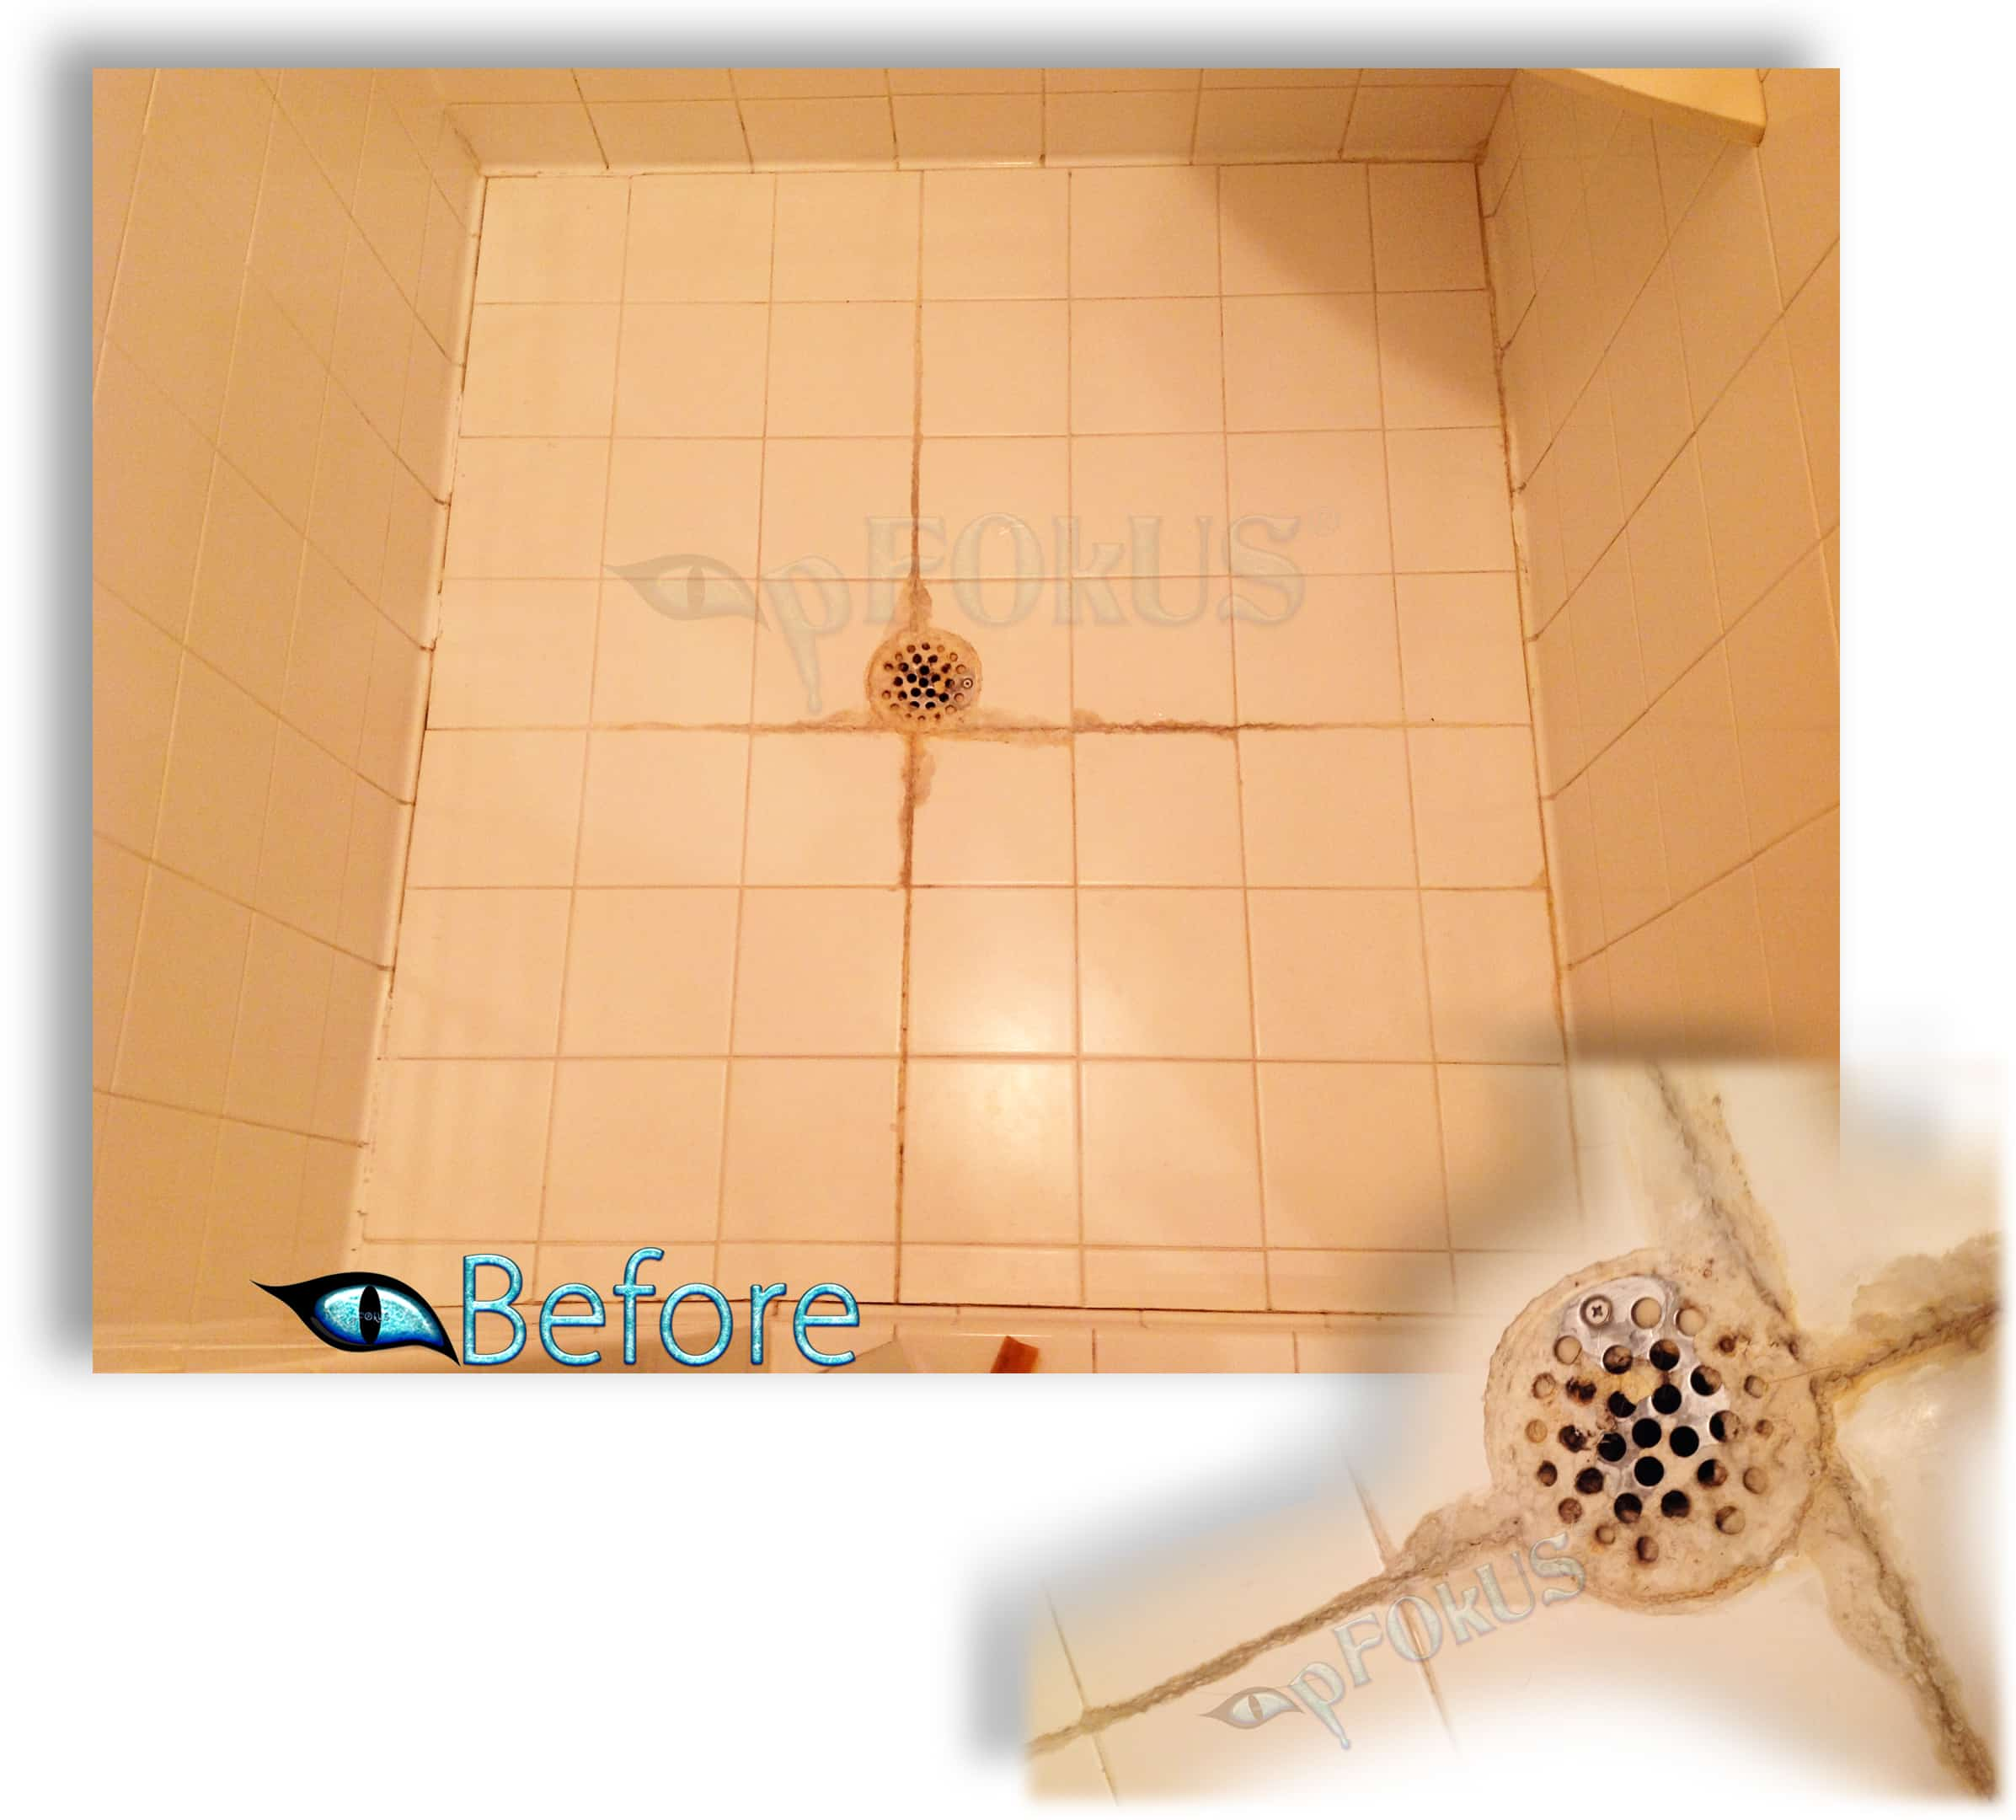 Shower Floor Grout & Efflorescence cleaner and remover | Zido